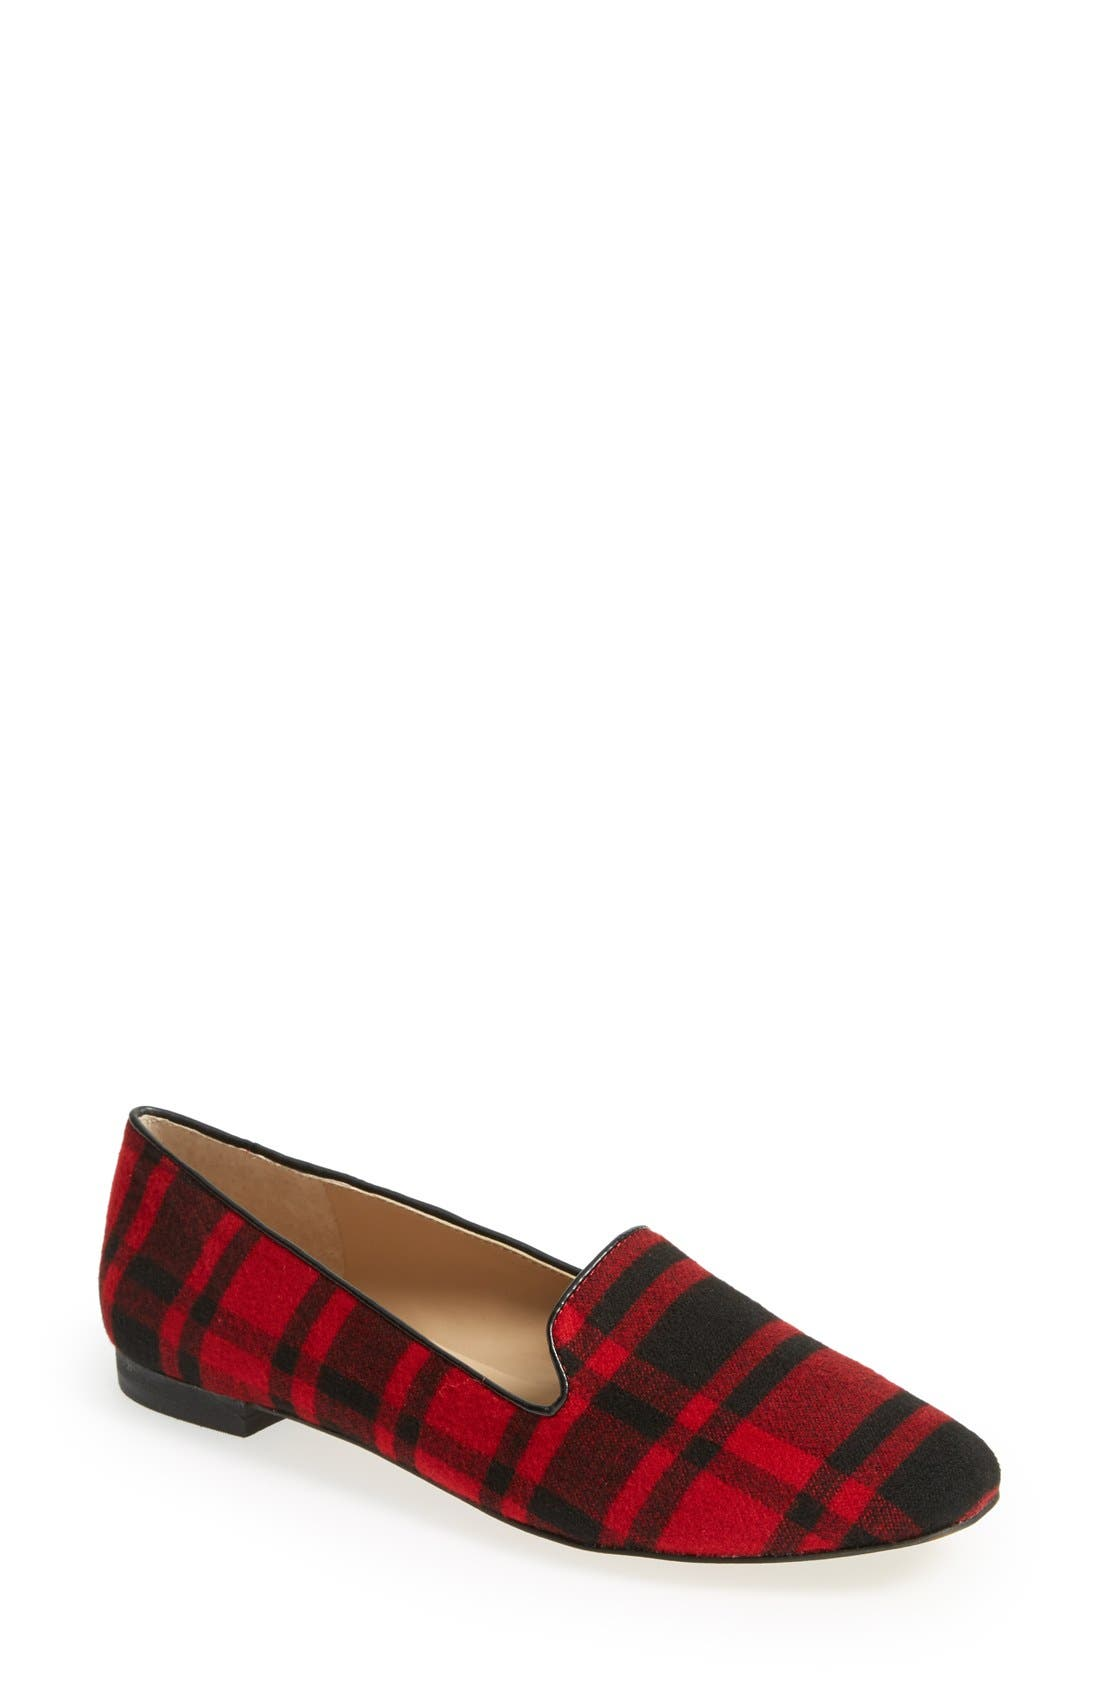 Alternate Image 1 Selected - Sole Society 'Miia' Loafer (Women)